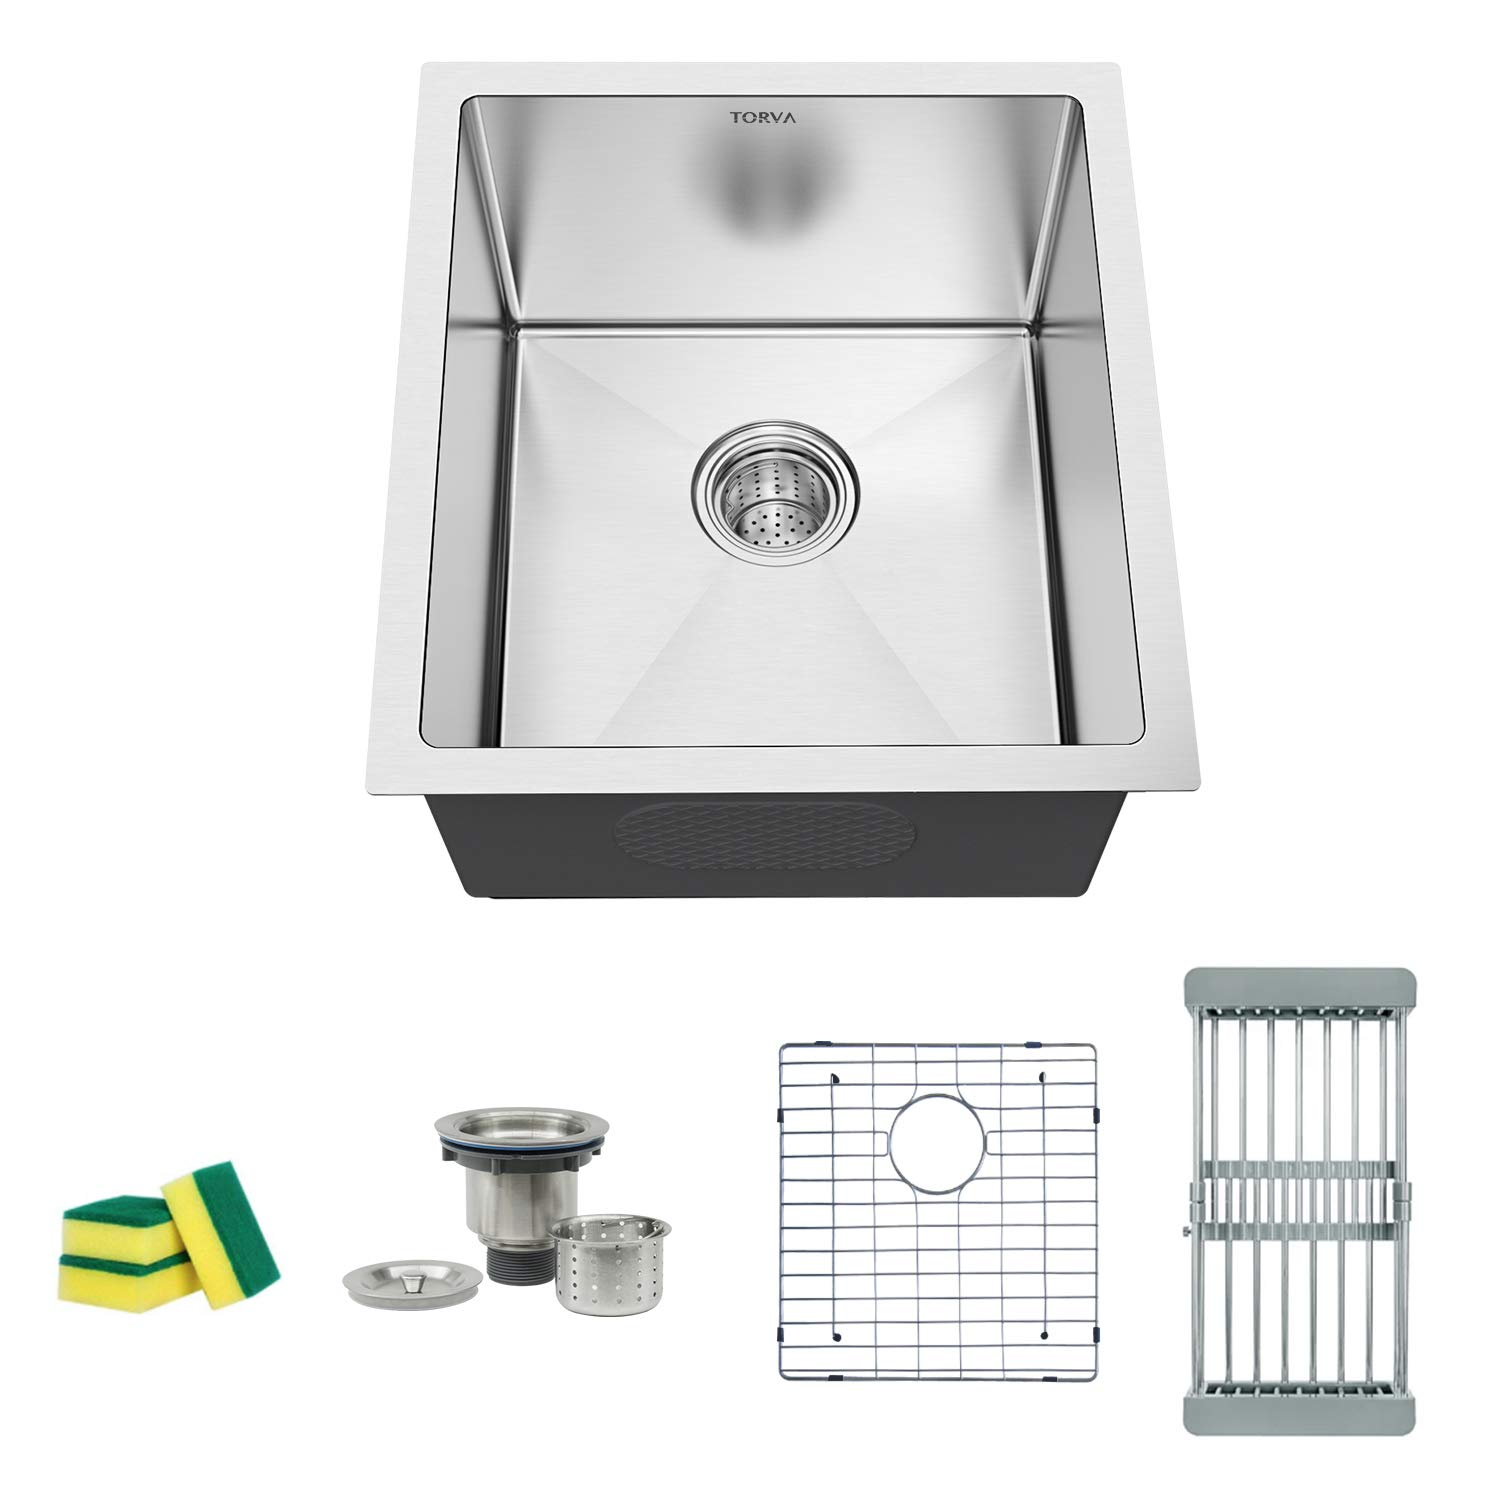 TORVA 15 x 17 Inch Undermount Kitchen Sink, 16 Gauge Stainless Steel Wet Bar or Prep Sinks Single Bowl, Fits 18'' Cabinet by TORVA